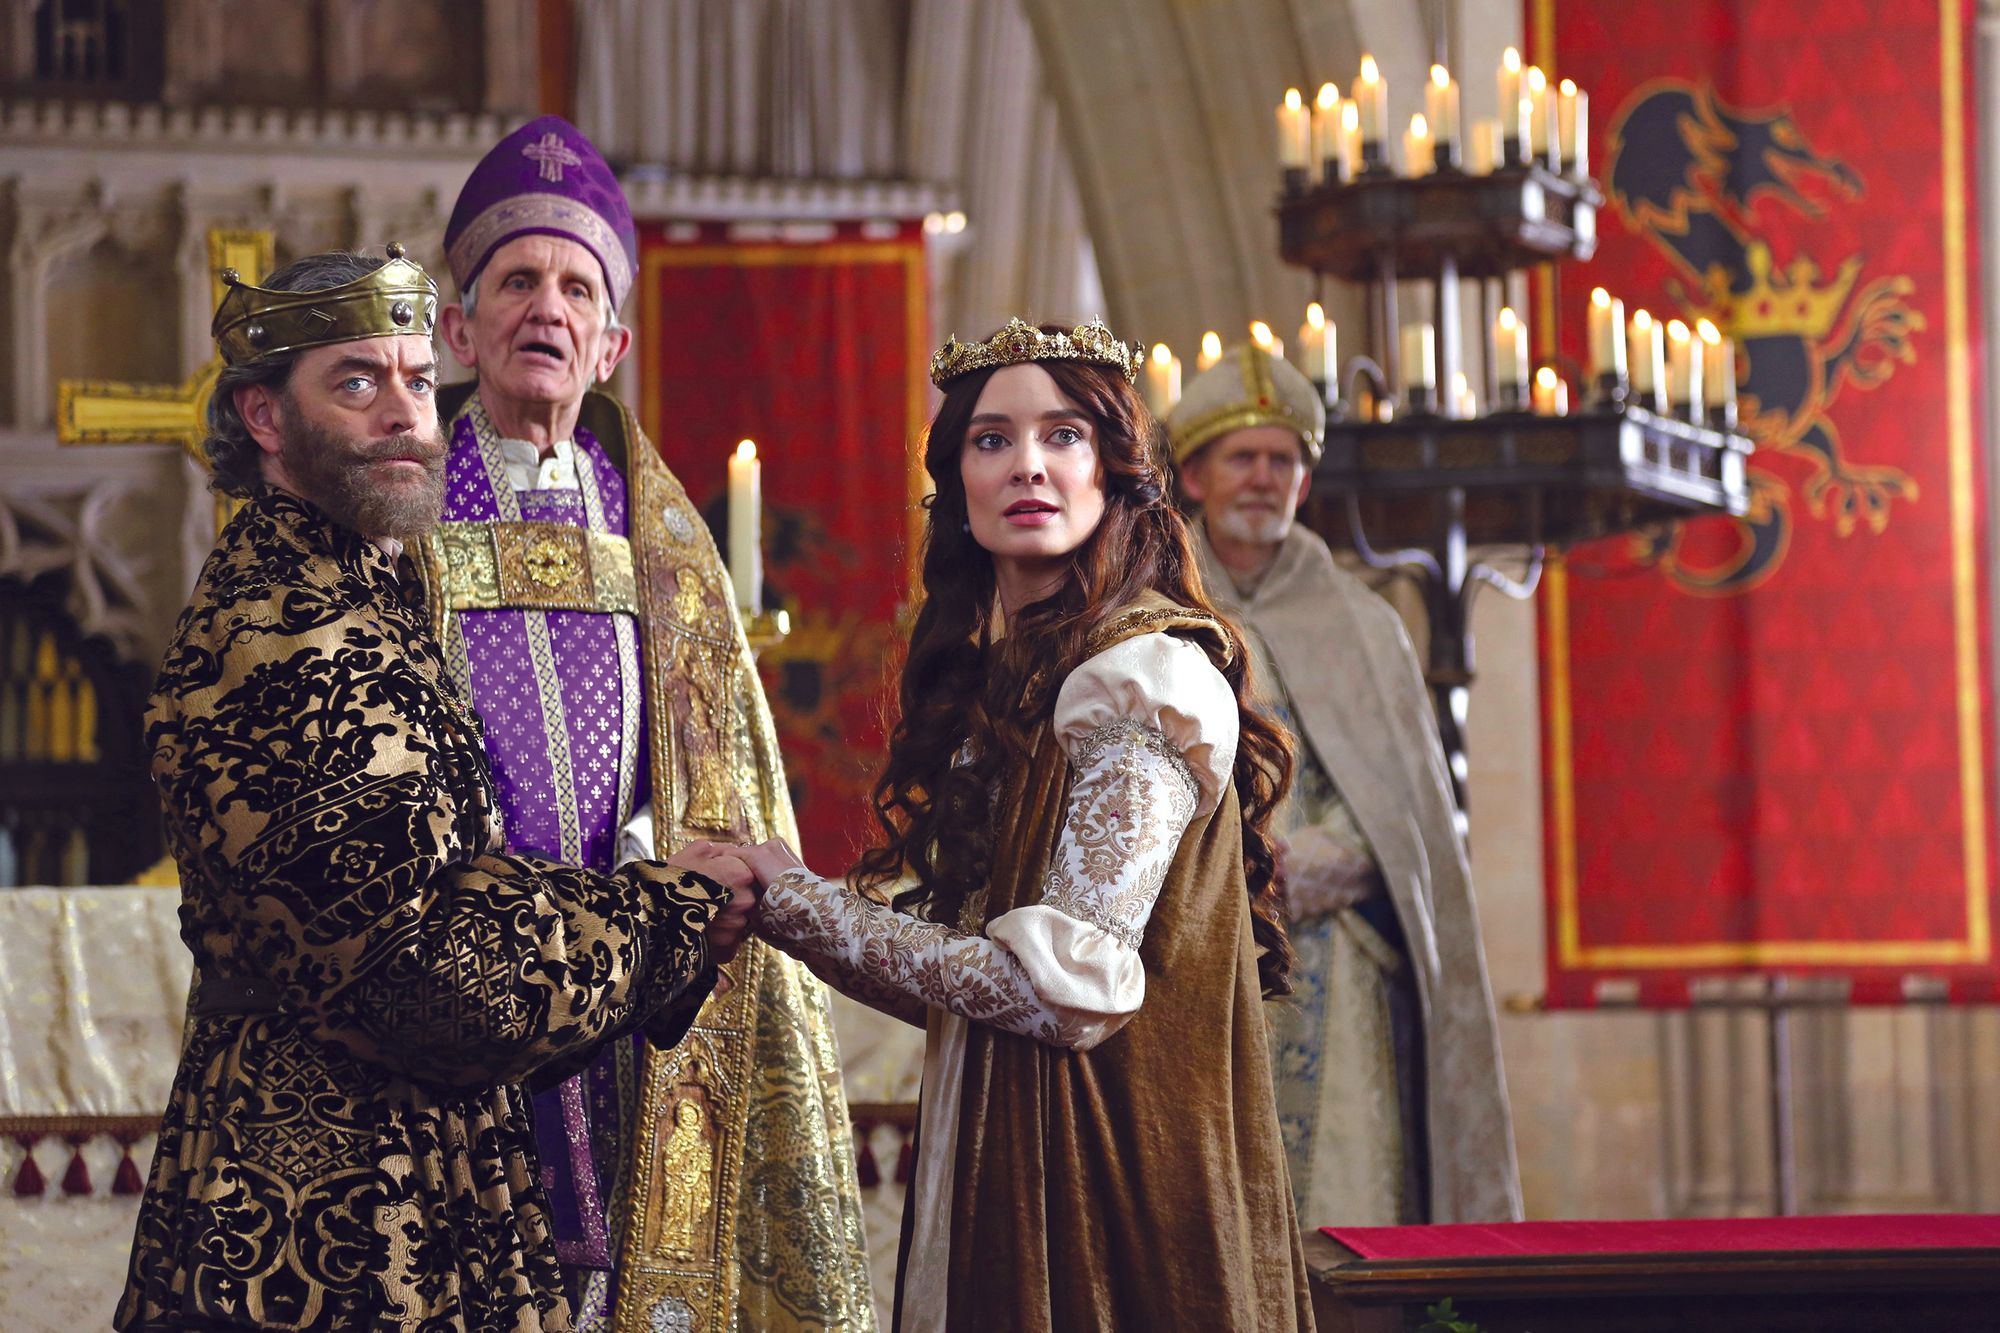 The wedding scene from the TV series Galavant